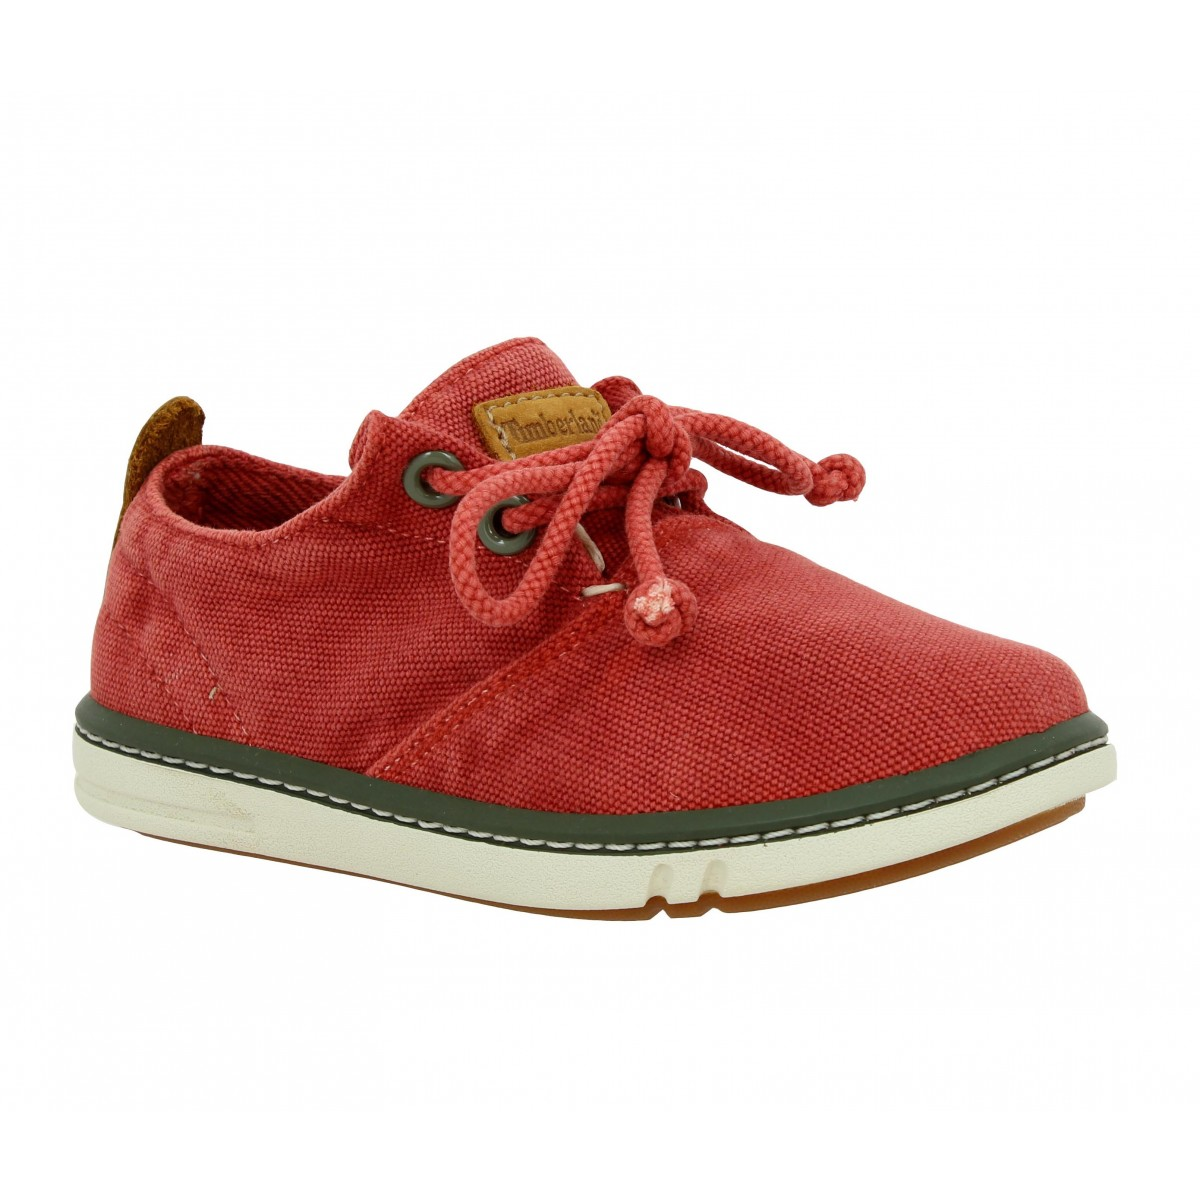 Baskets TIMBERLAND Earthkeepers Hookset Handcrafted Oxford toile Enfant Rouge